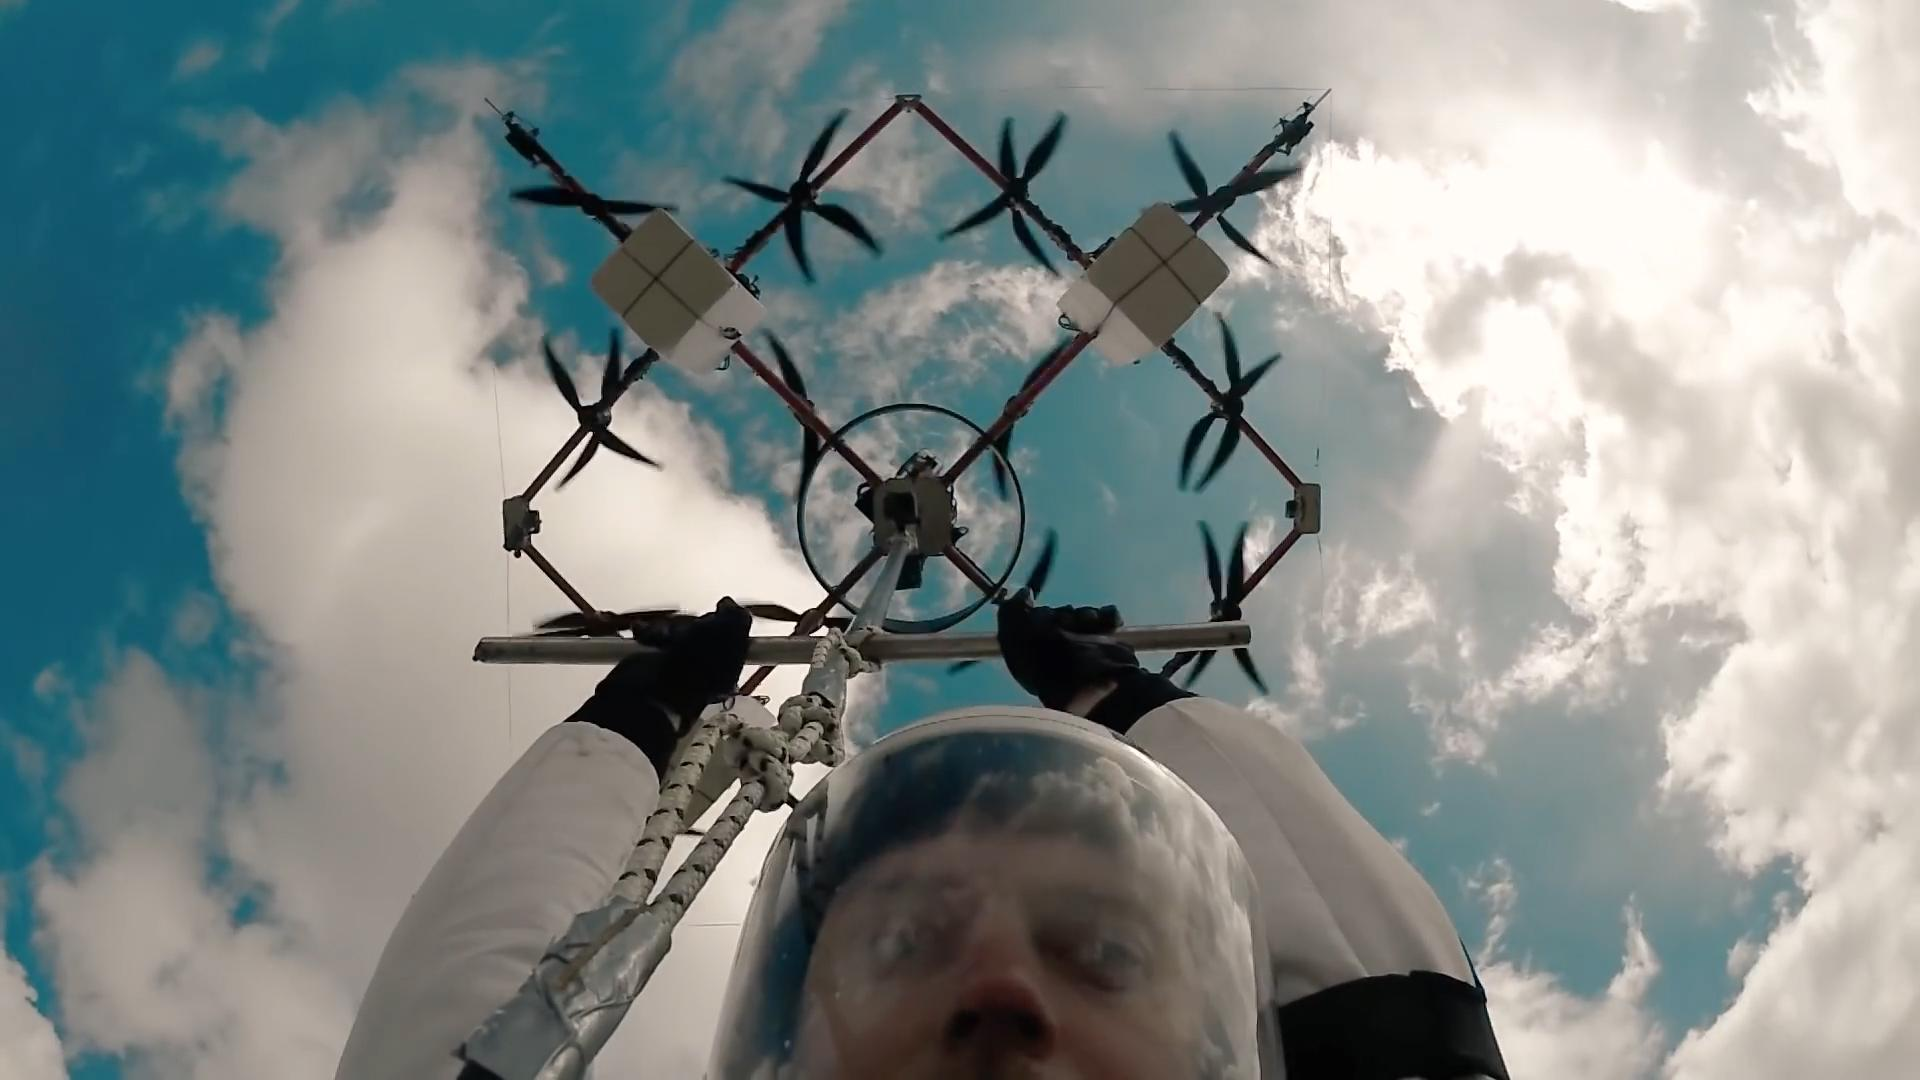 This rescue drone can carry a human